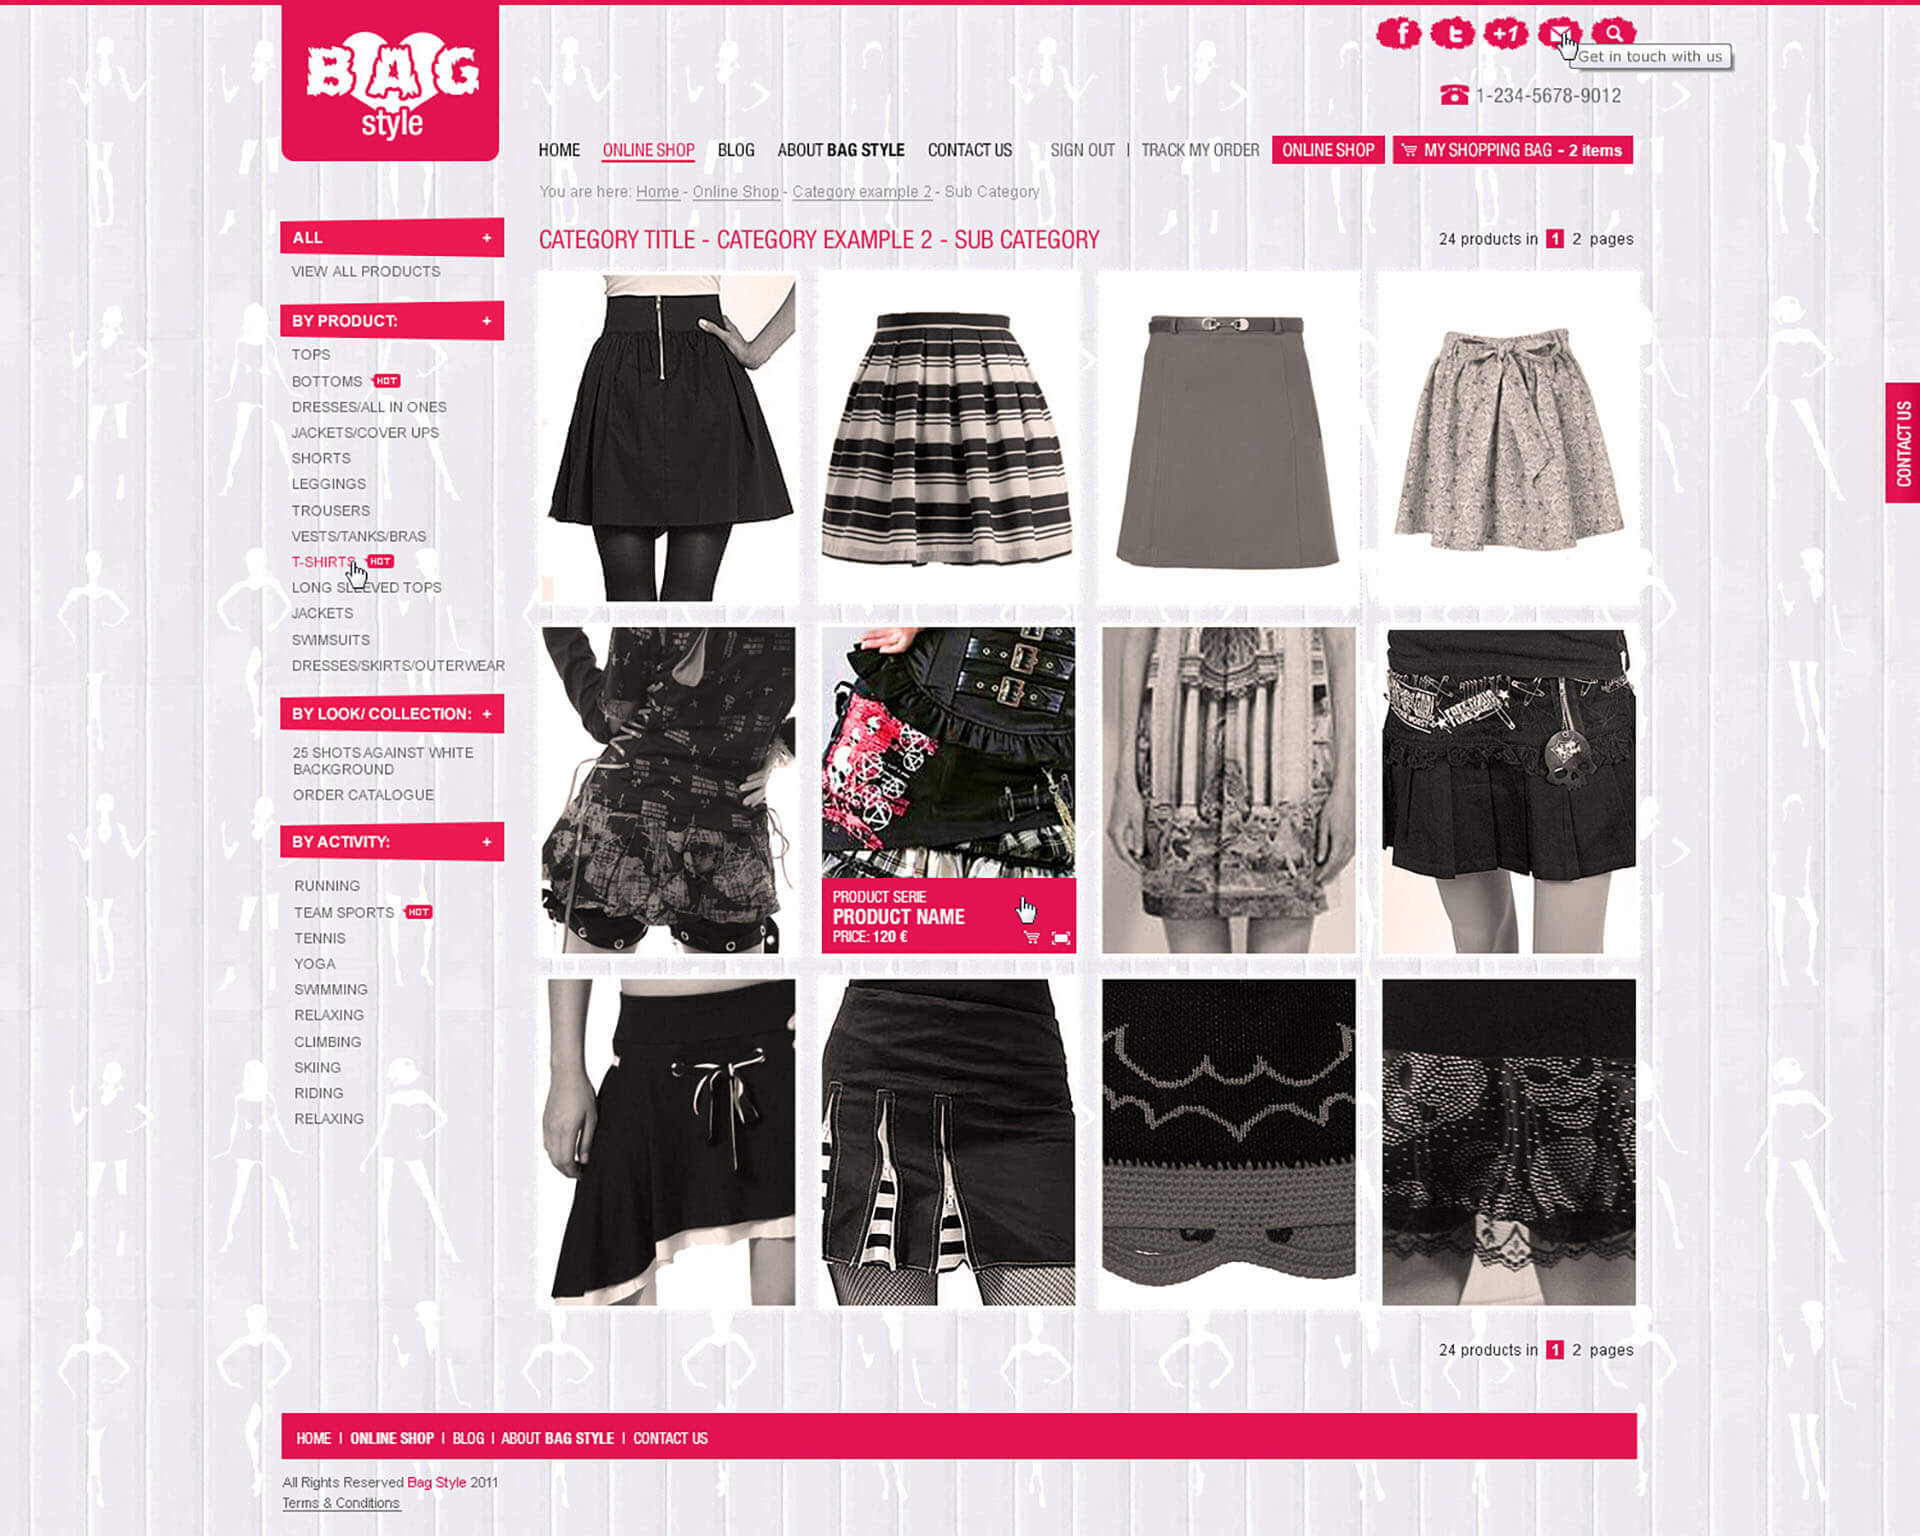 Bag Style Products Page